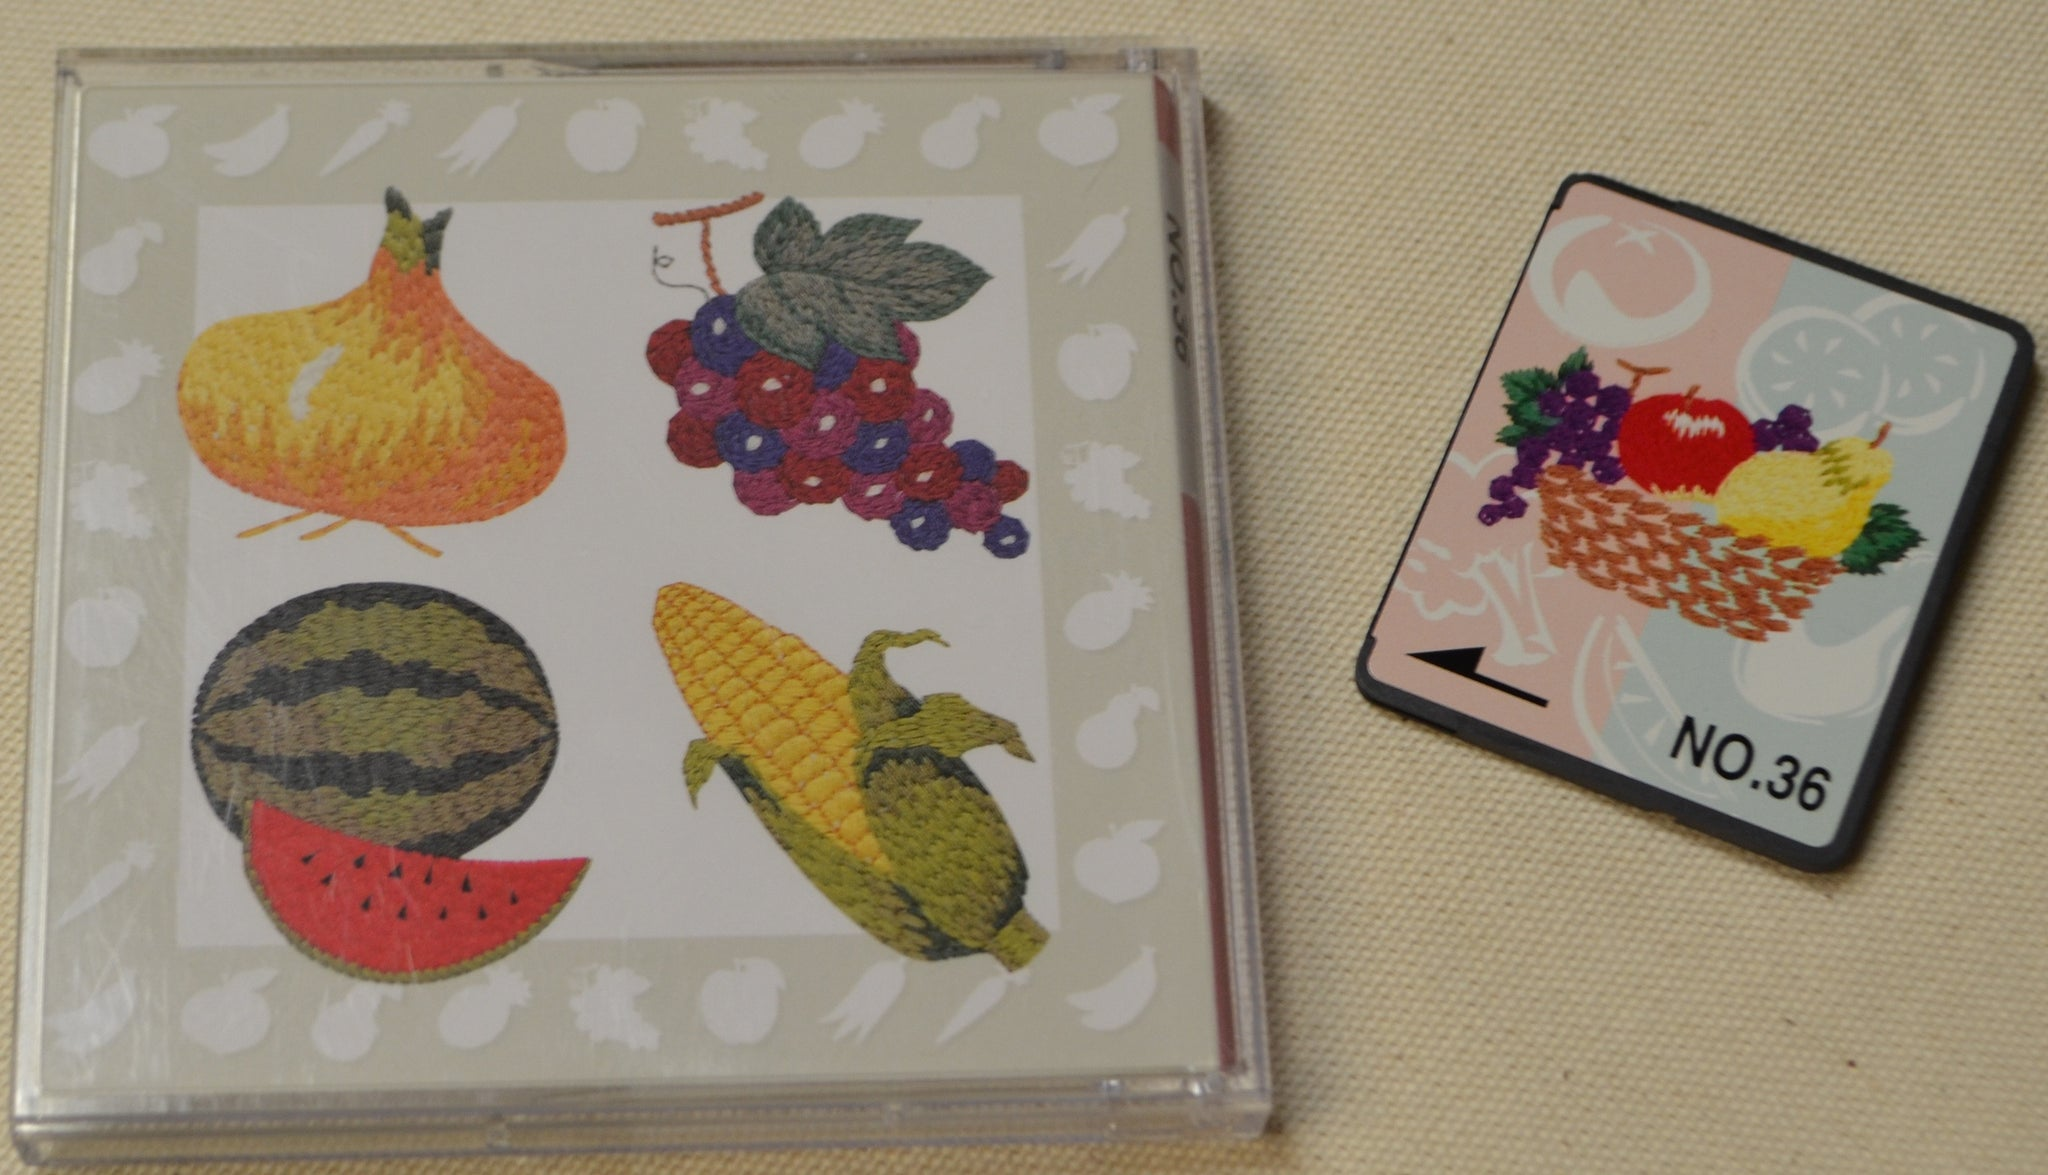 Brother Embroidery Design Card No 36 Fruit Vegetables Pre Owned